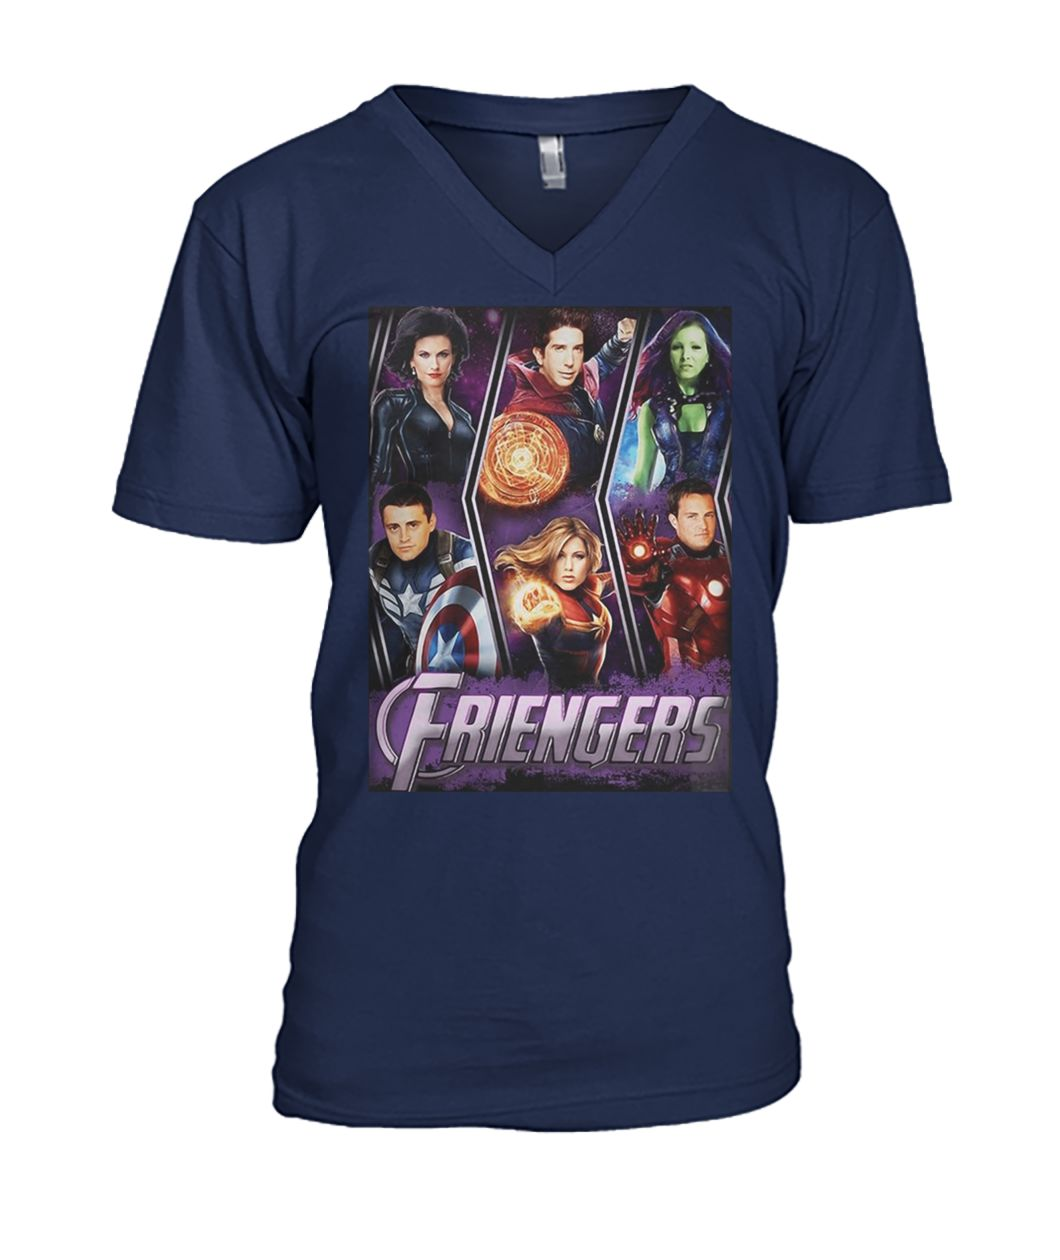 Marvel avengers endgame friengers friend mens v-neck